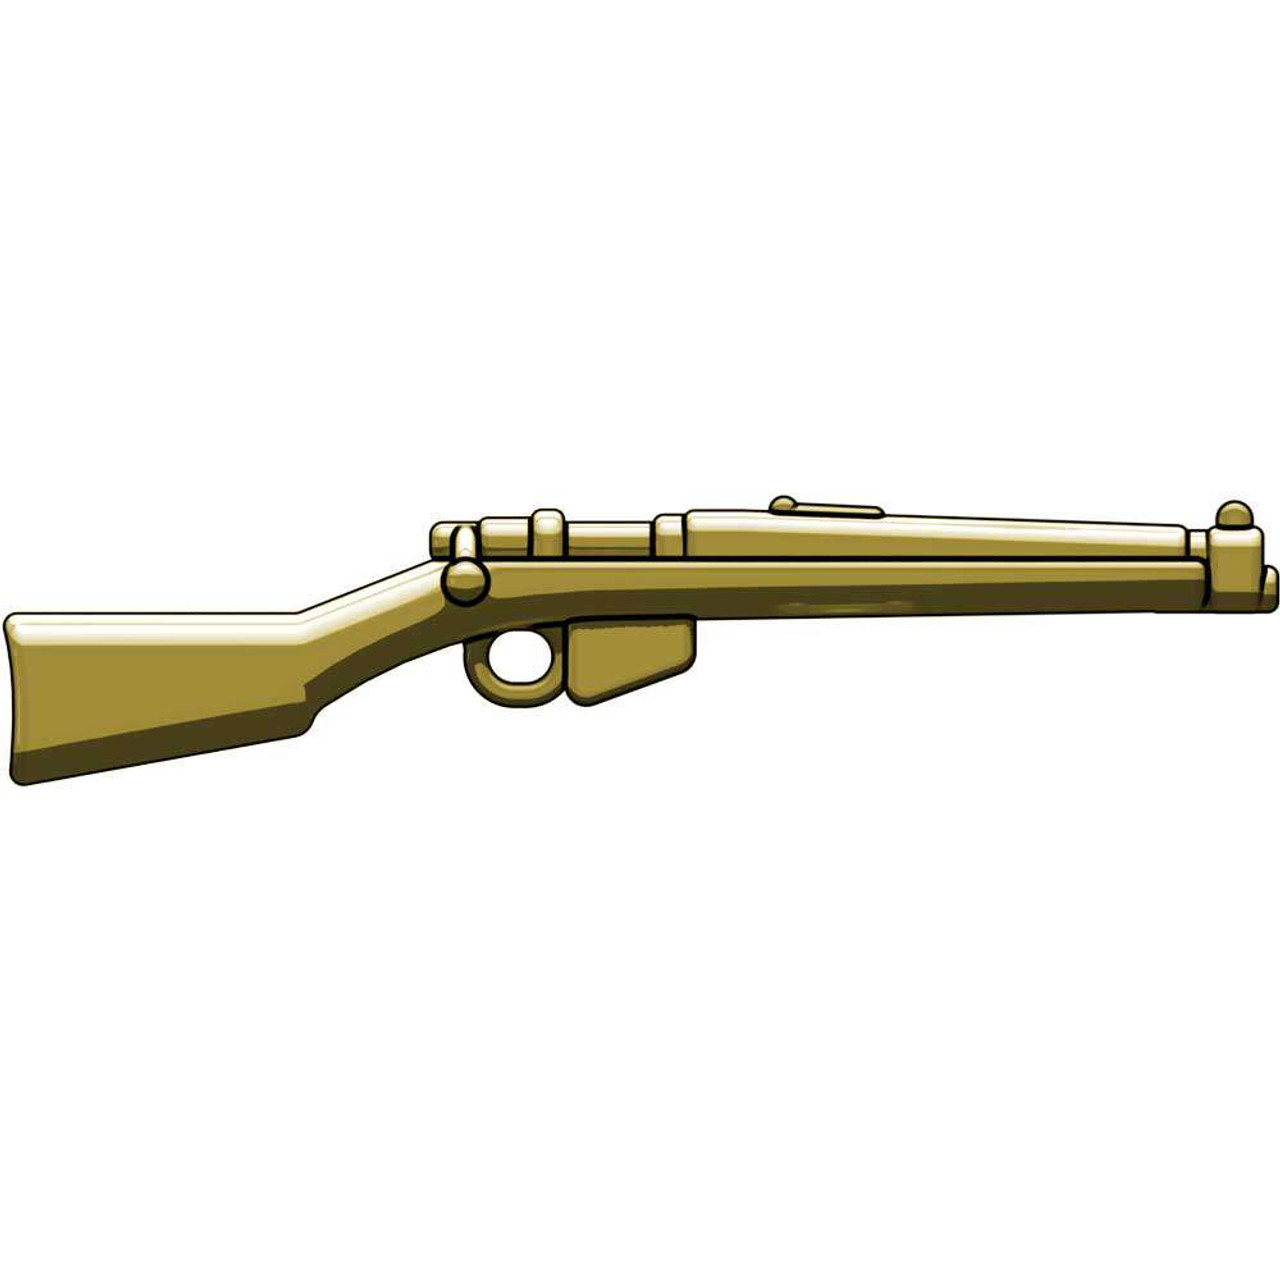 BrickArms Weapons Lee-Enfield SMLE 2.5-Inch [Tan]